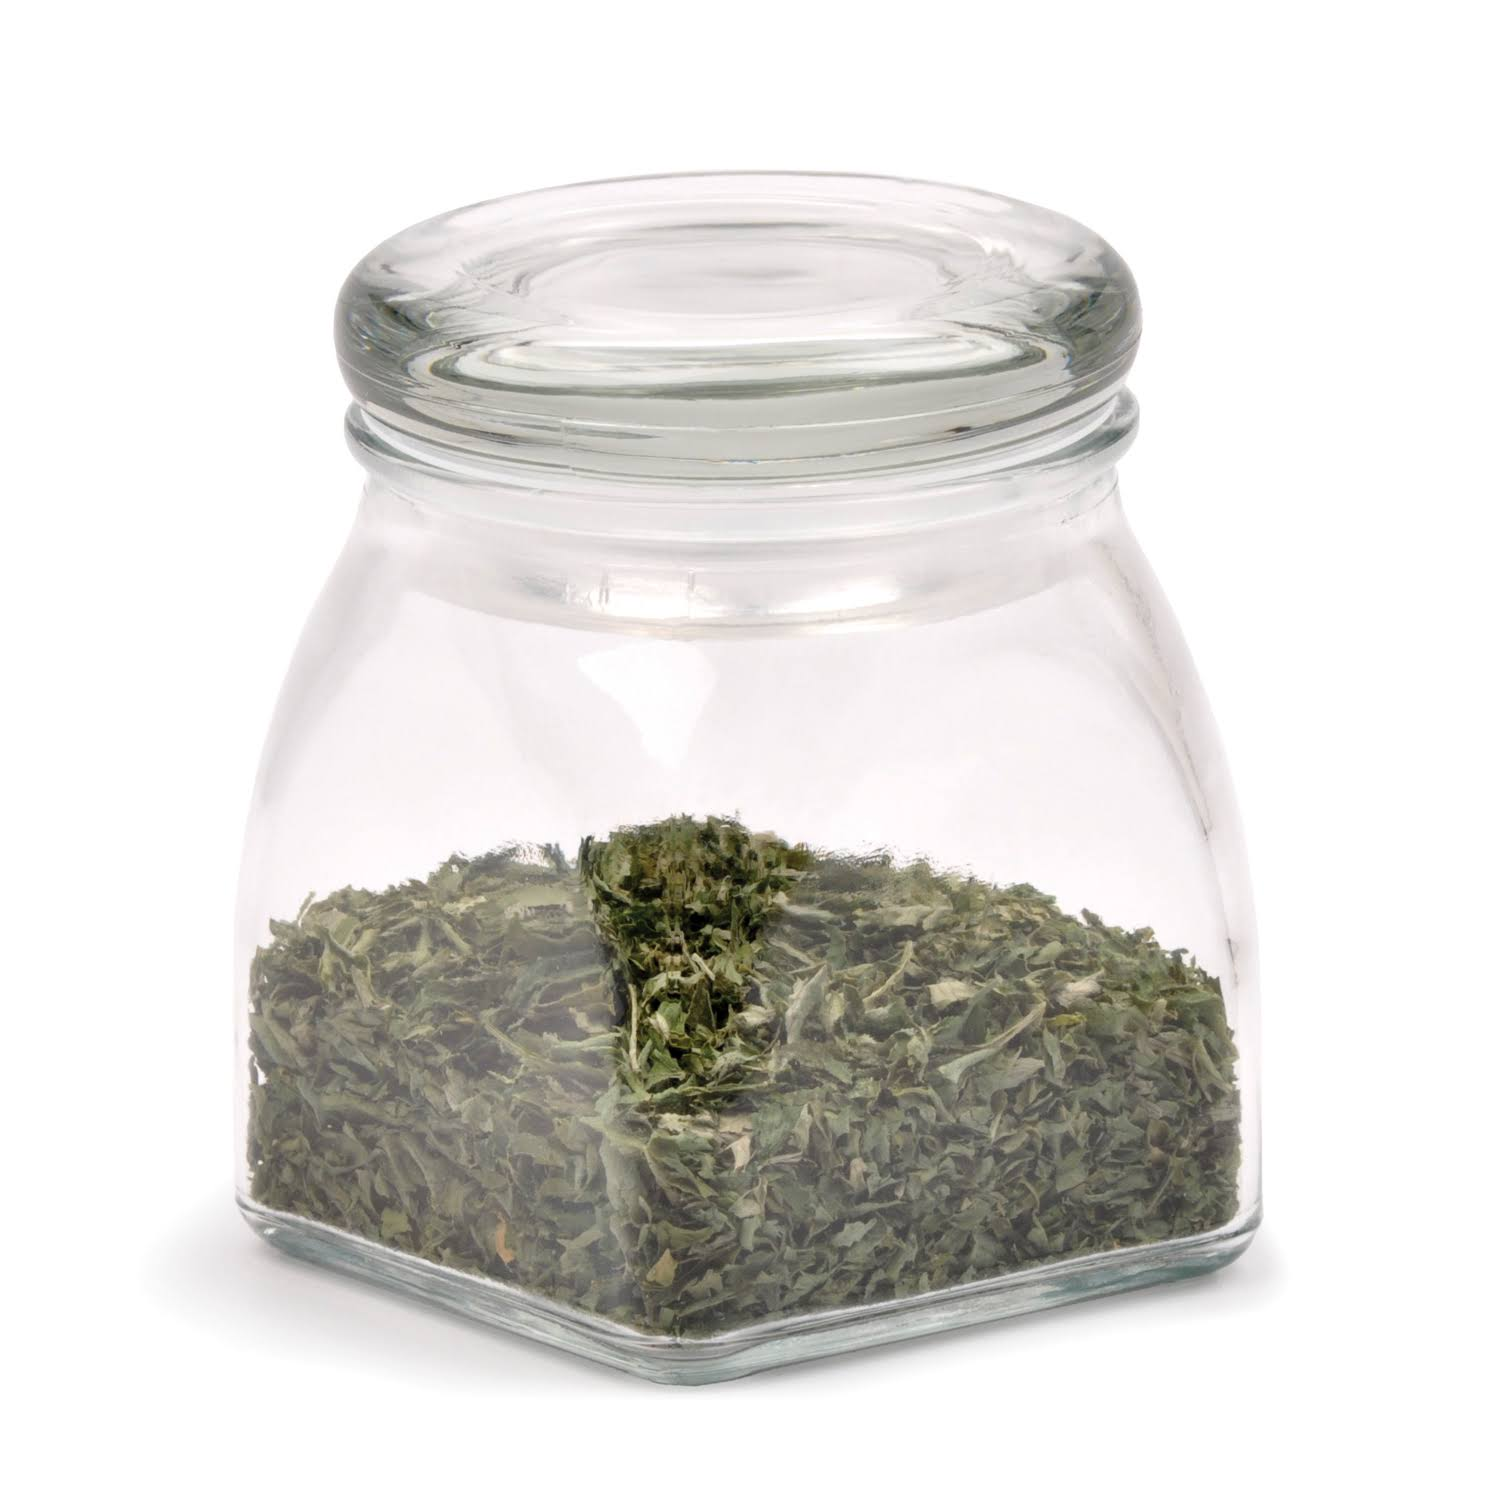 Rsvp Big Mouth Spice Jar